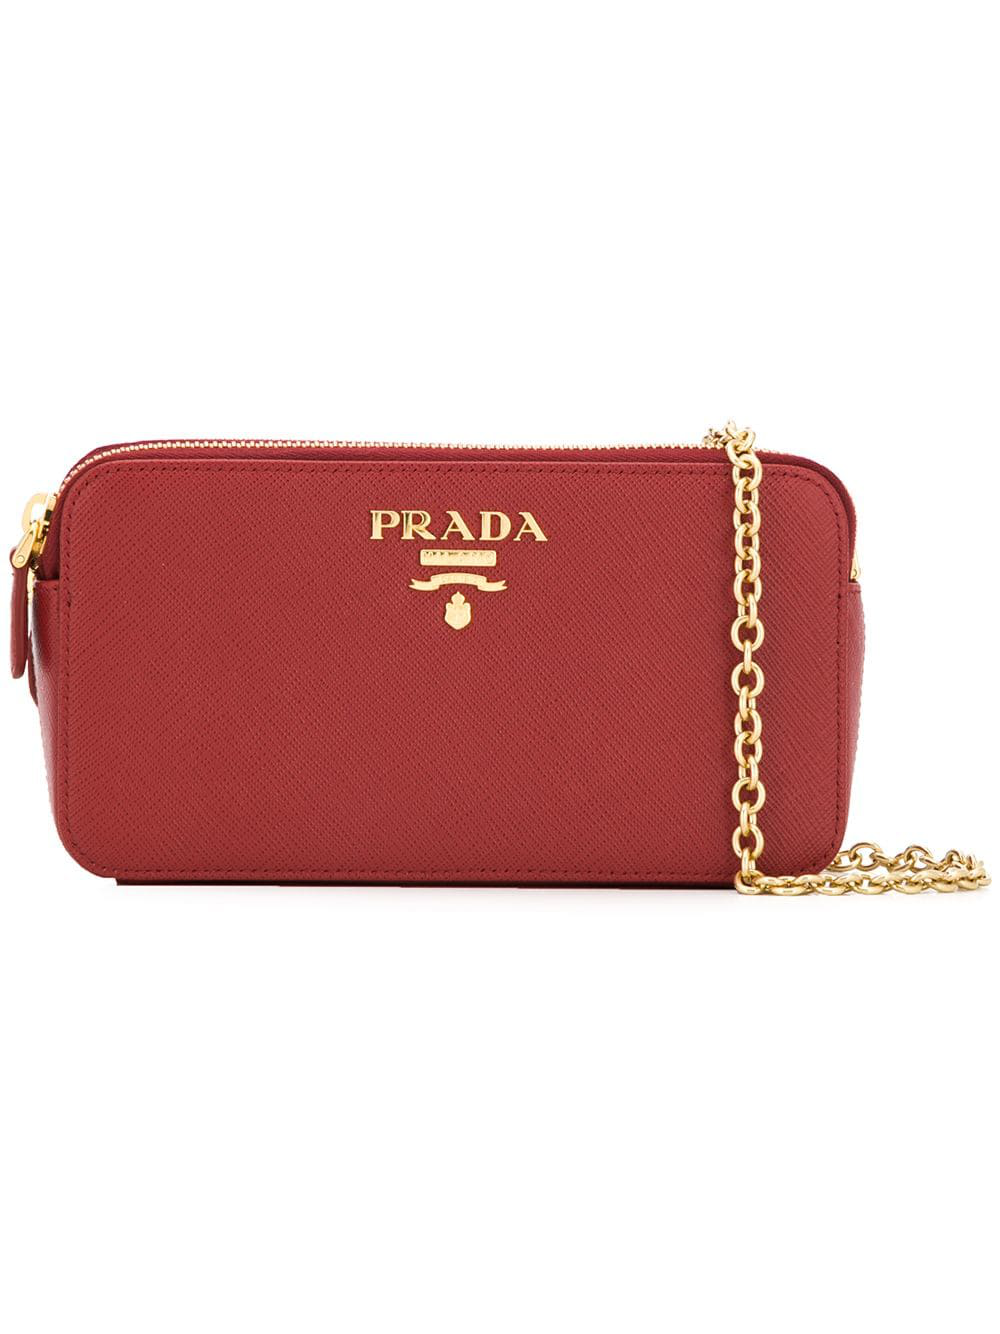 a9c837ffd430 Prada Logo Plaque Clutch Bag - Red